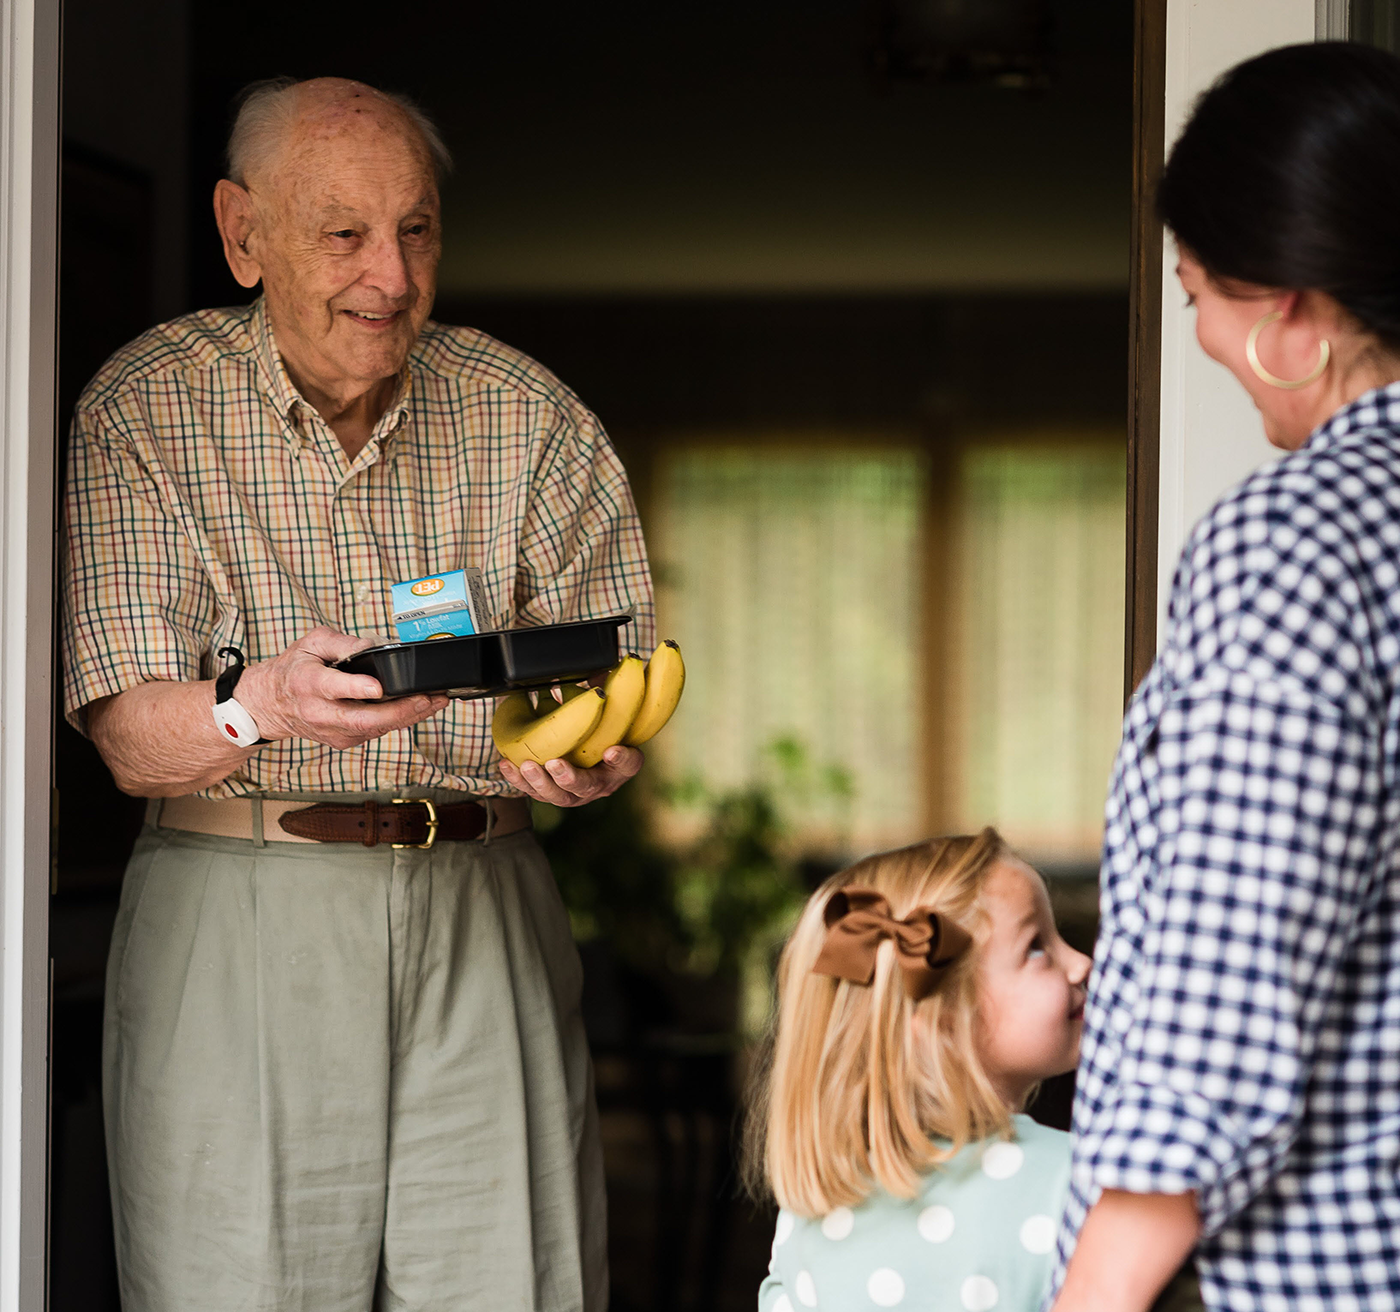 Image of a man receiving goods from Meals on Wheels.